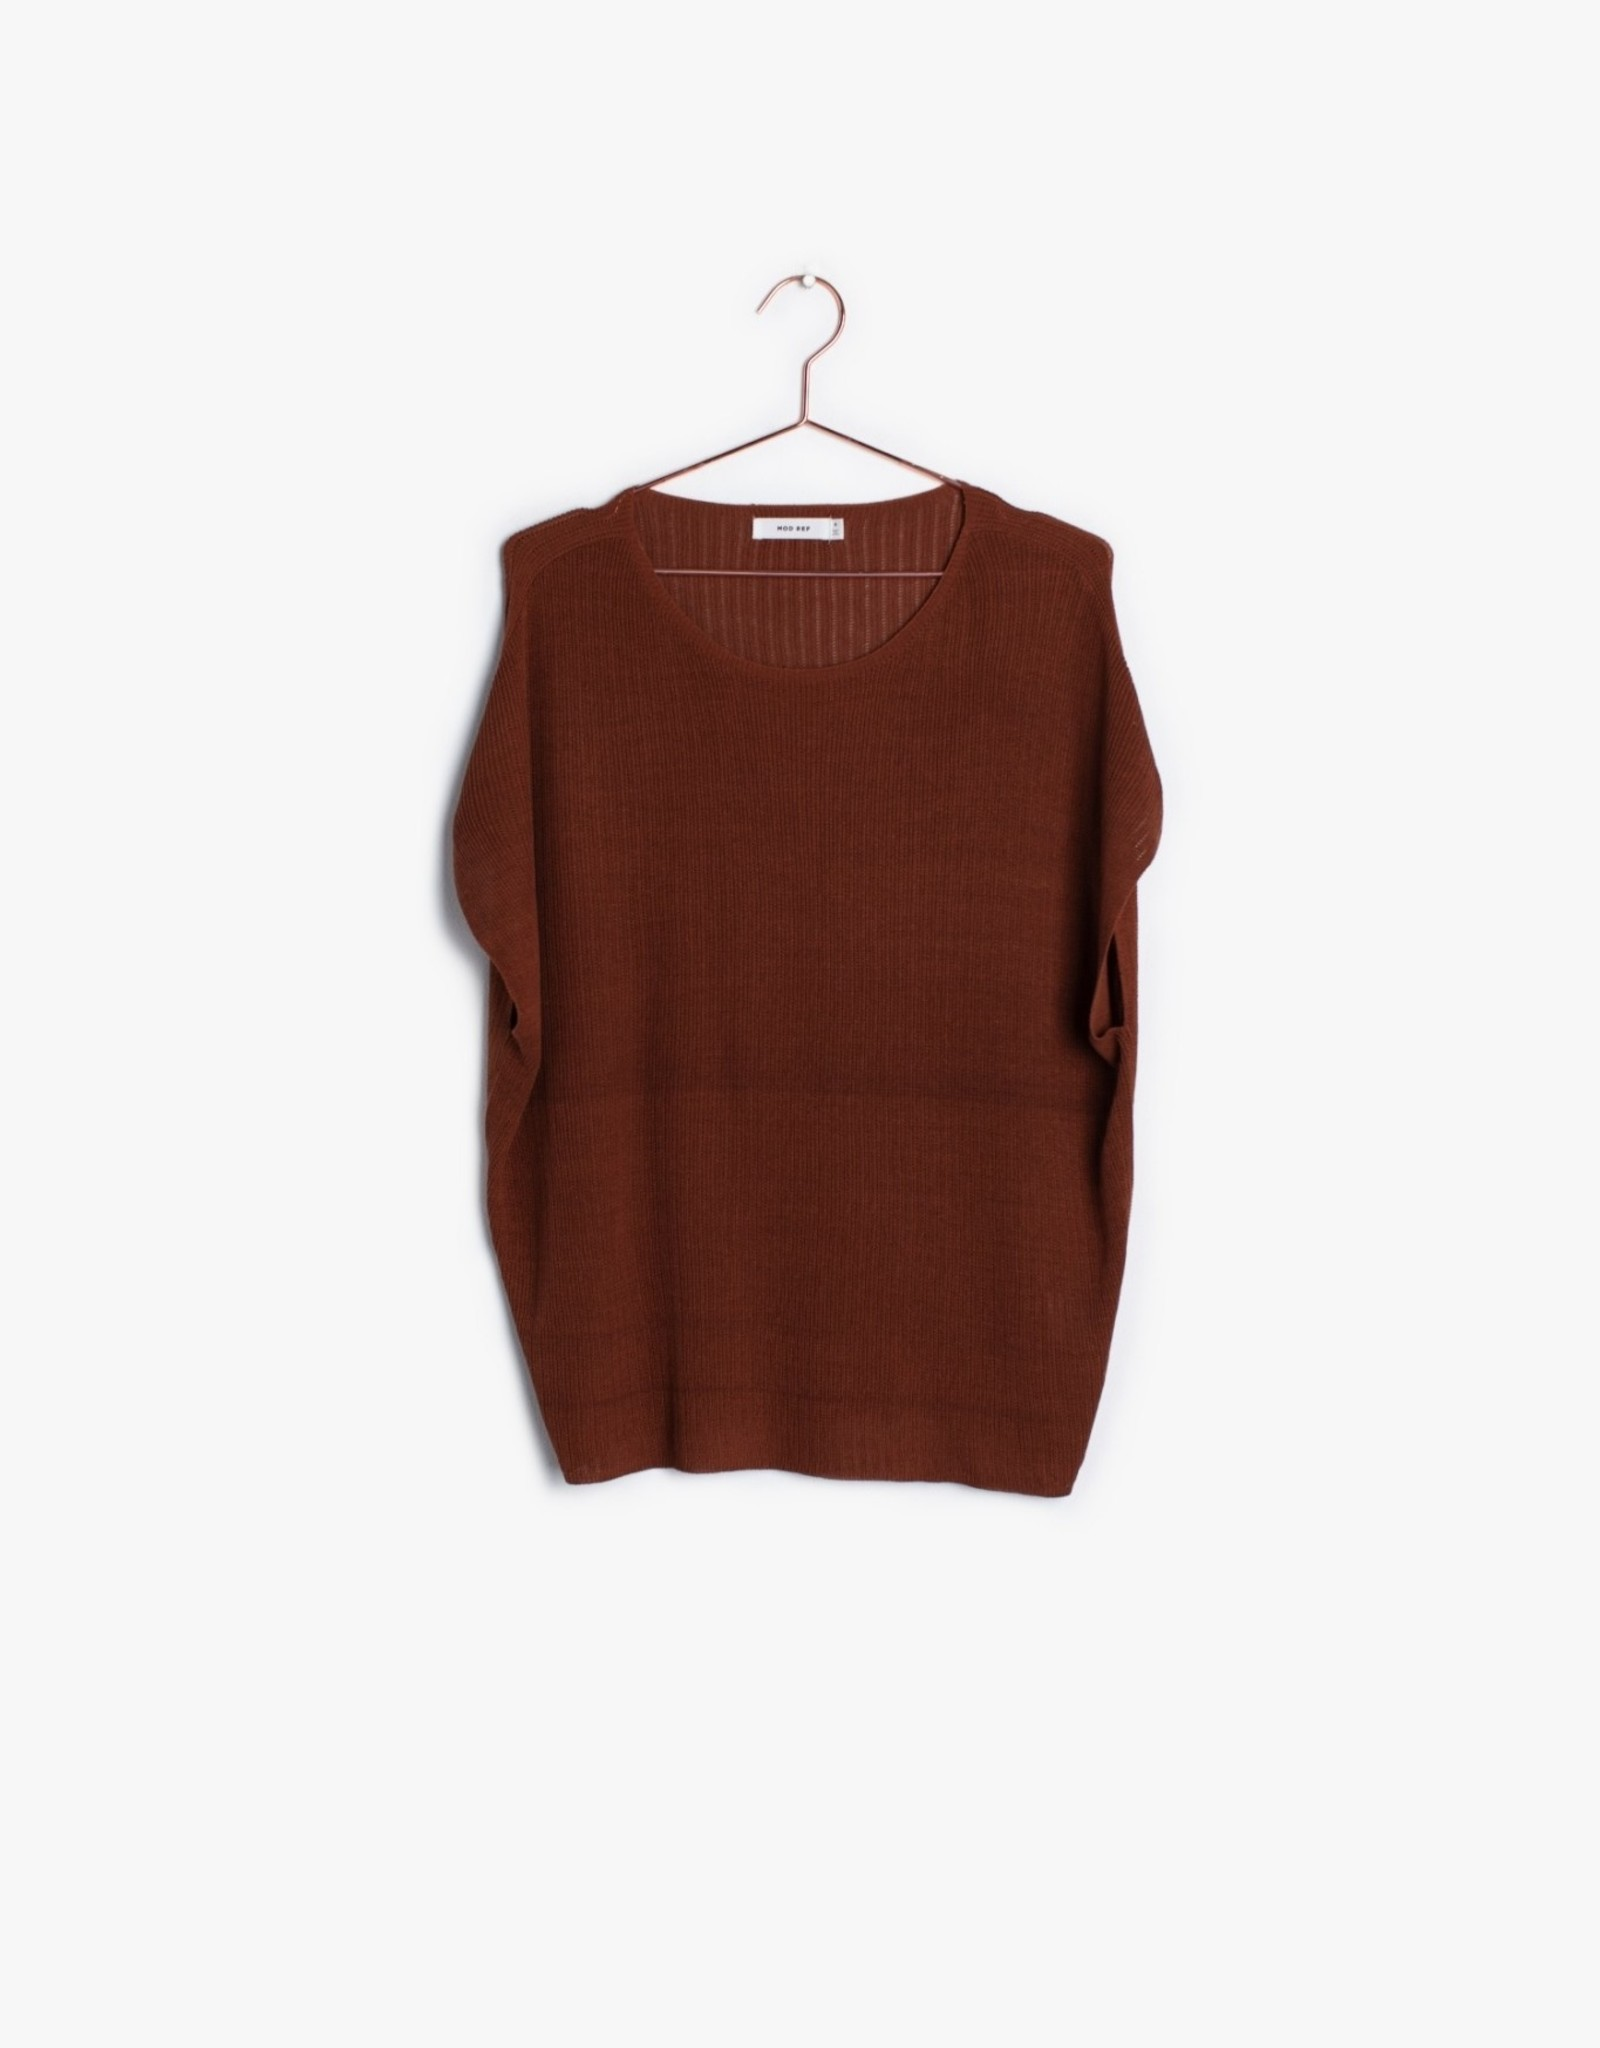 MOD REF VALLEY Knit Top